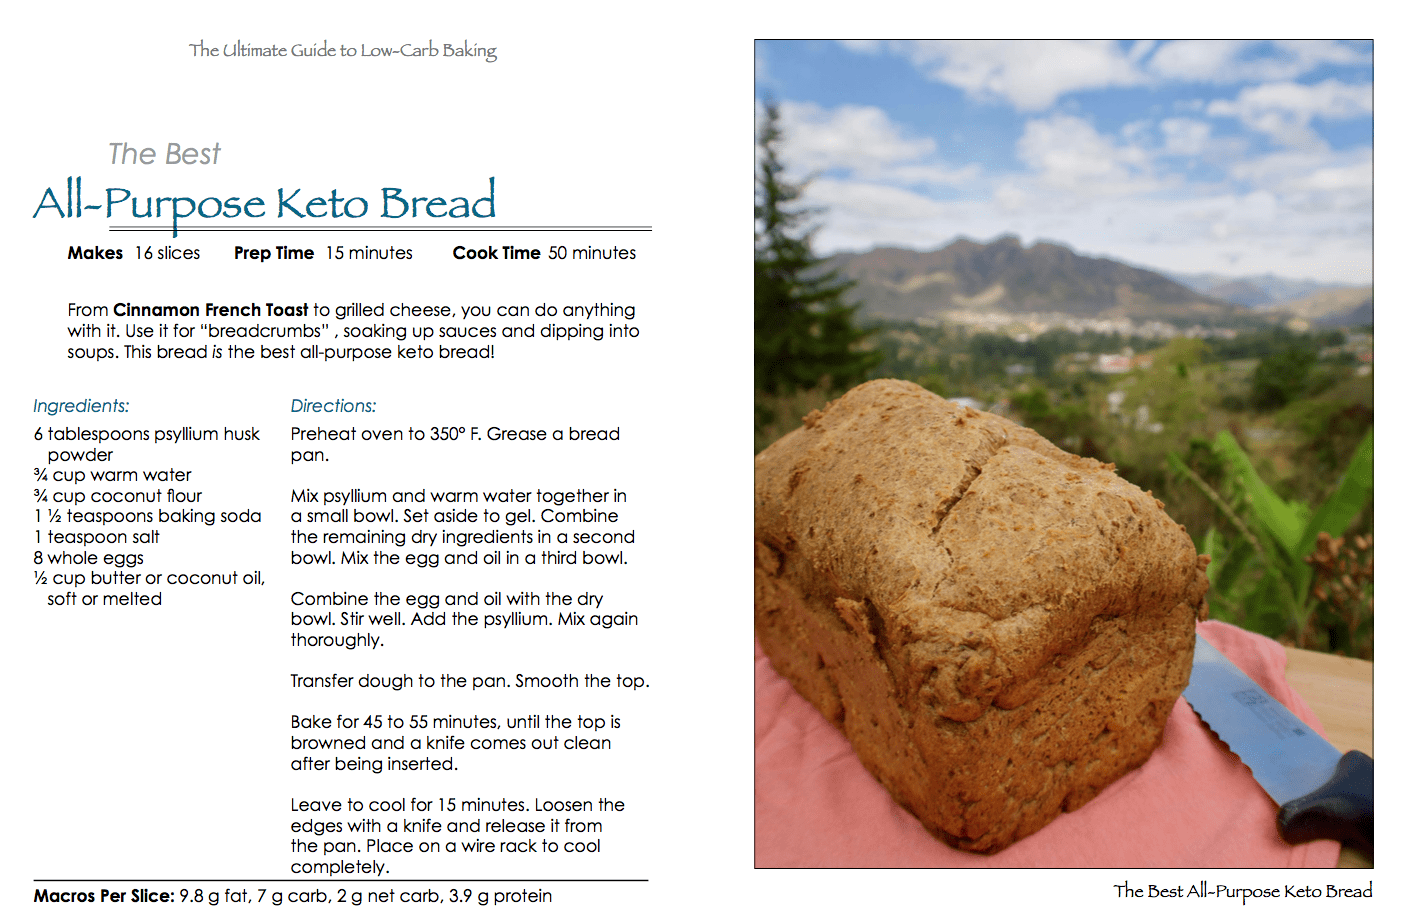 The ultimate guide to low carb baking sugar free grain free low the best all purpose keto bread fandeluxe Images